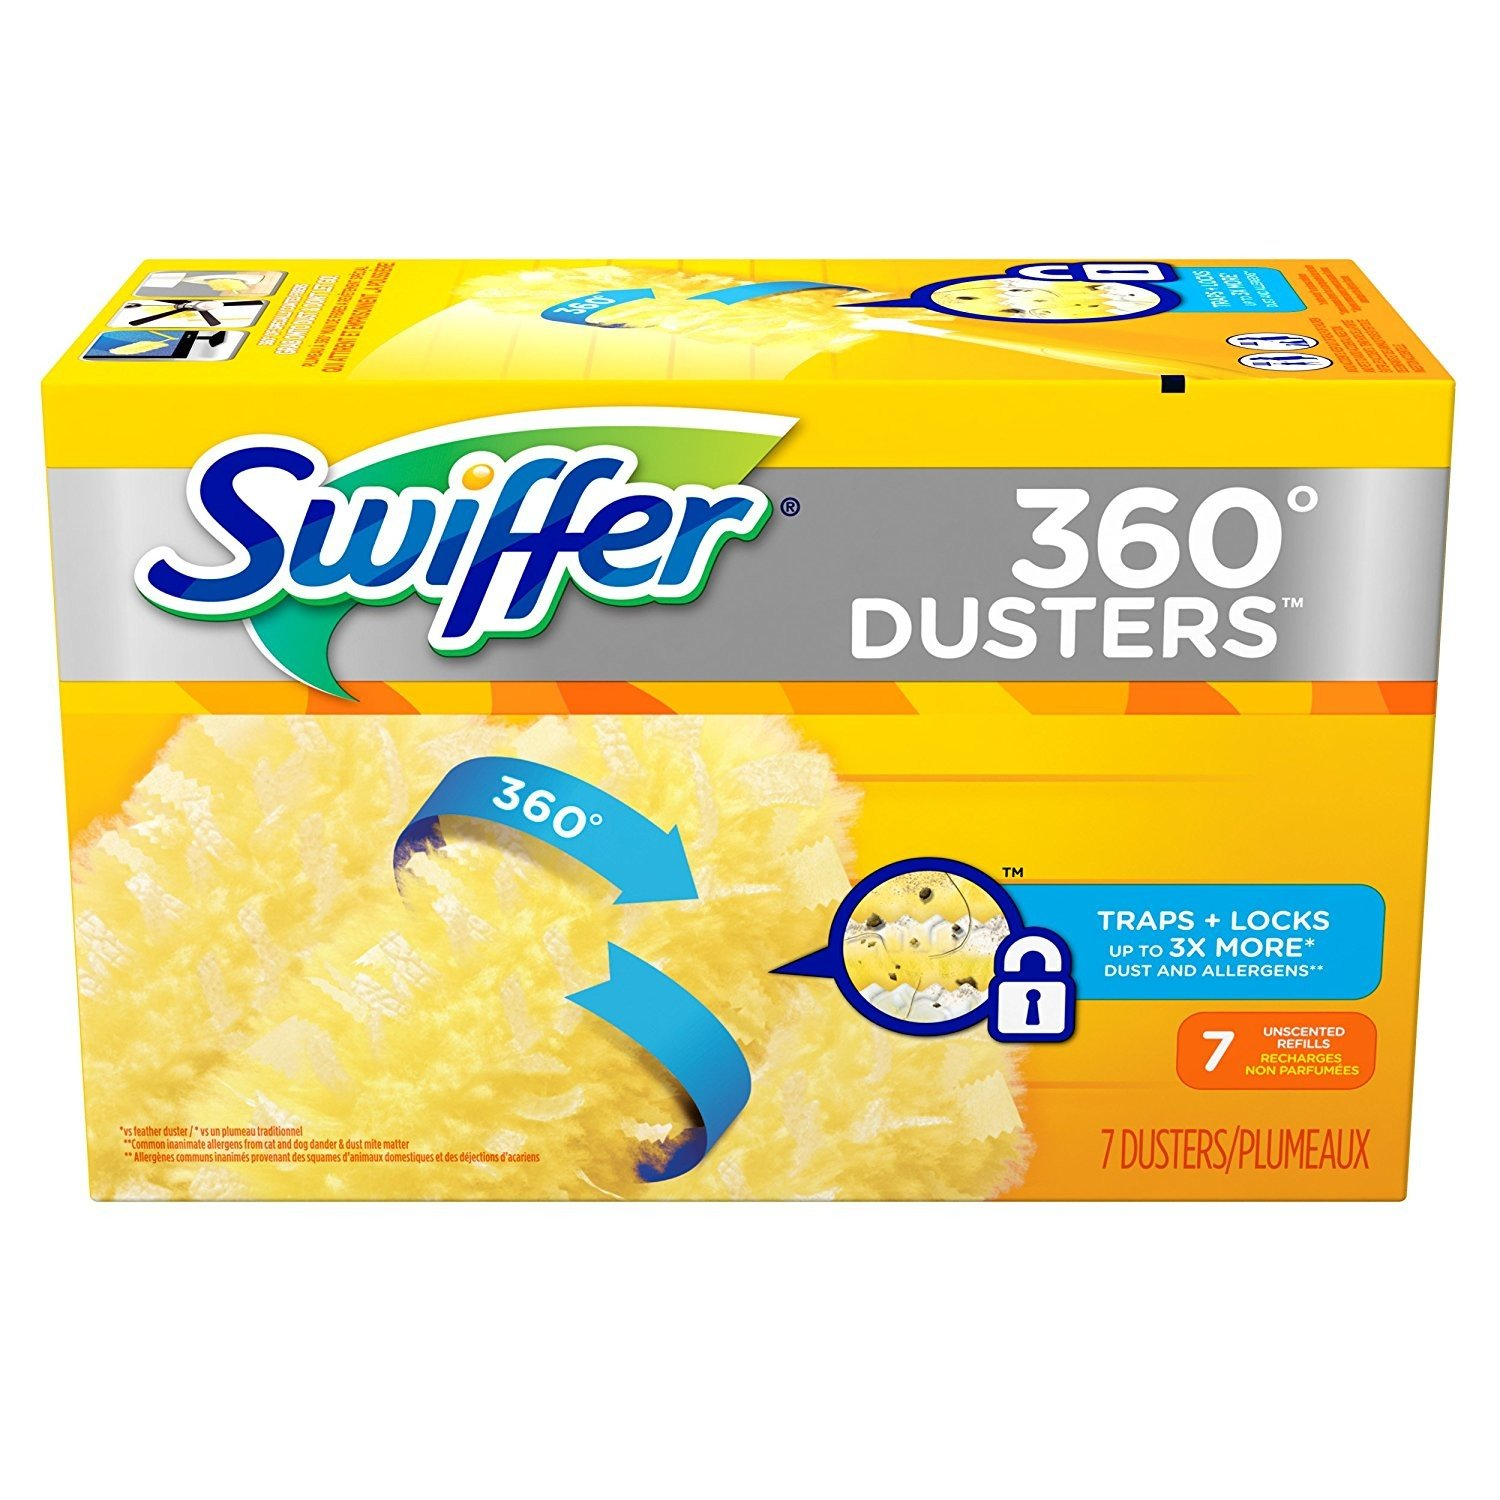 Swiffer 360 Dusters Refills Unscented 7 Ct - 3 Pack by Swiffer (Image #2)